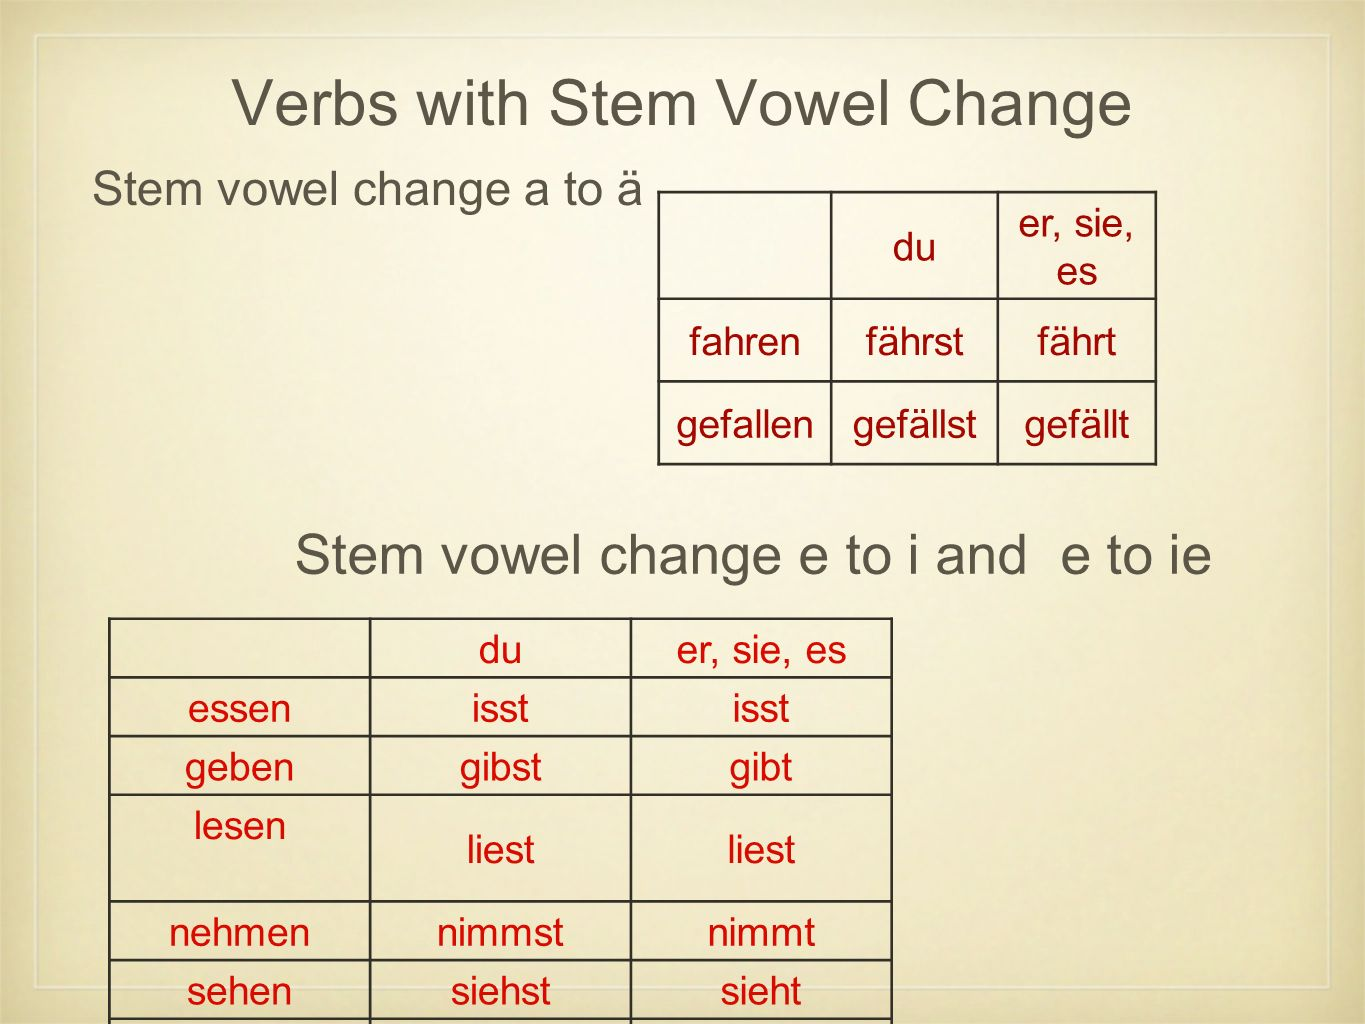 Verbs with Stem Vowel Change